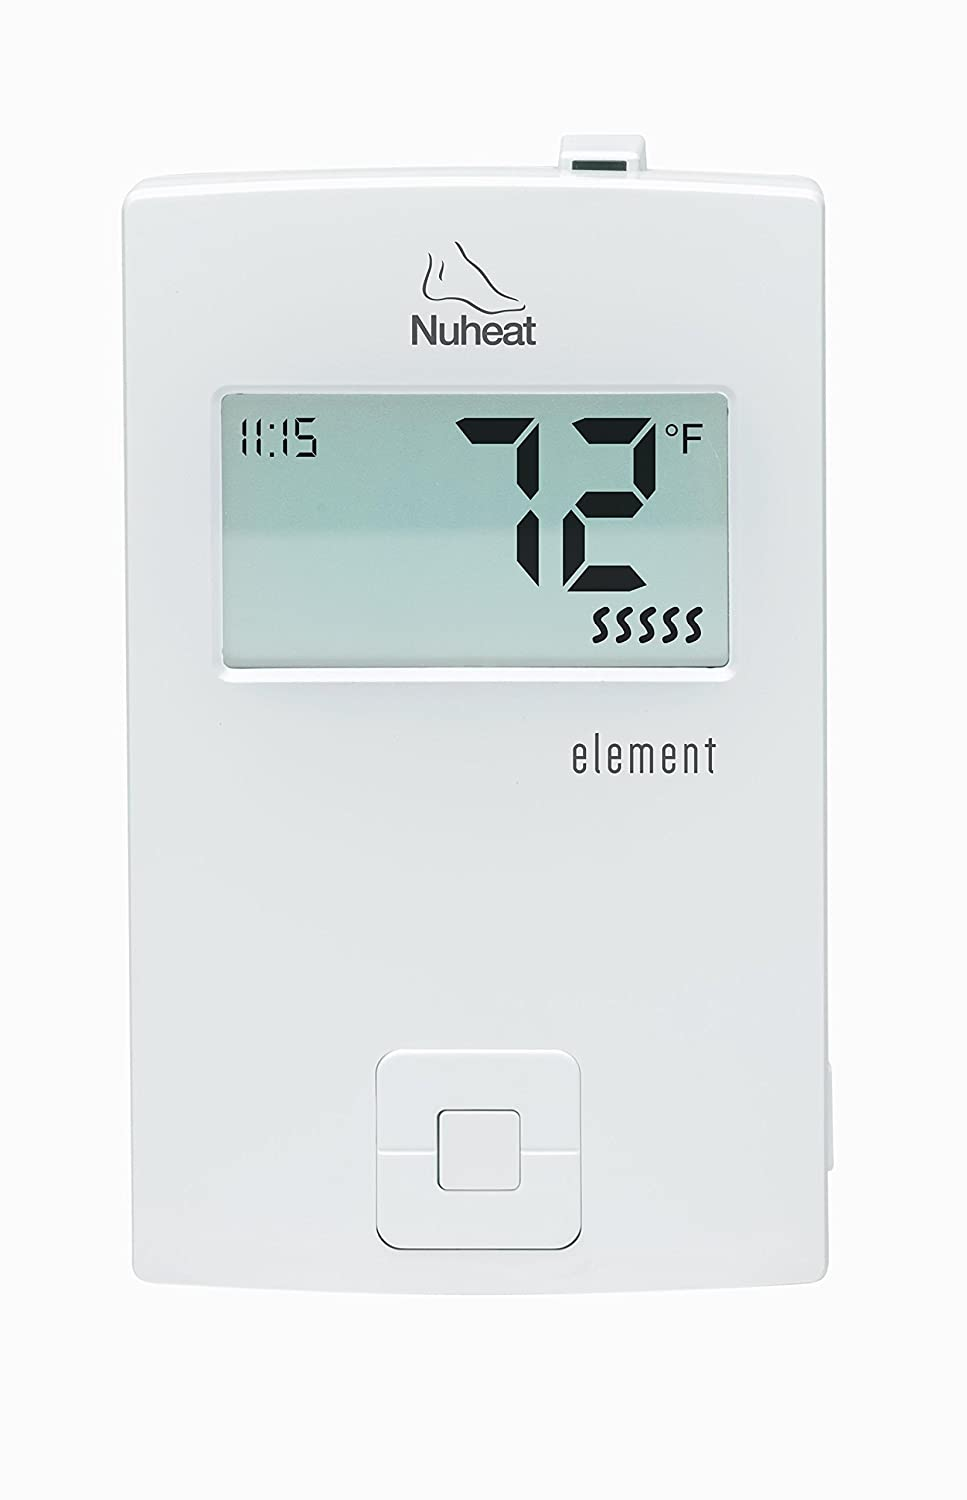 71o3YeRHs9L._SL1500_ nuheat element non programmable 120 240v radiant floor heating nuheat thermostat wiring diagram at aneh.co